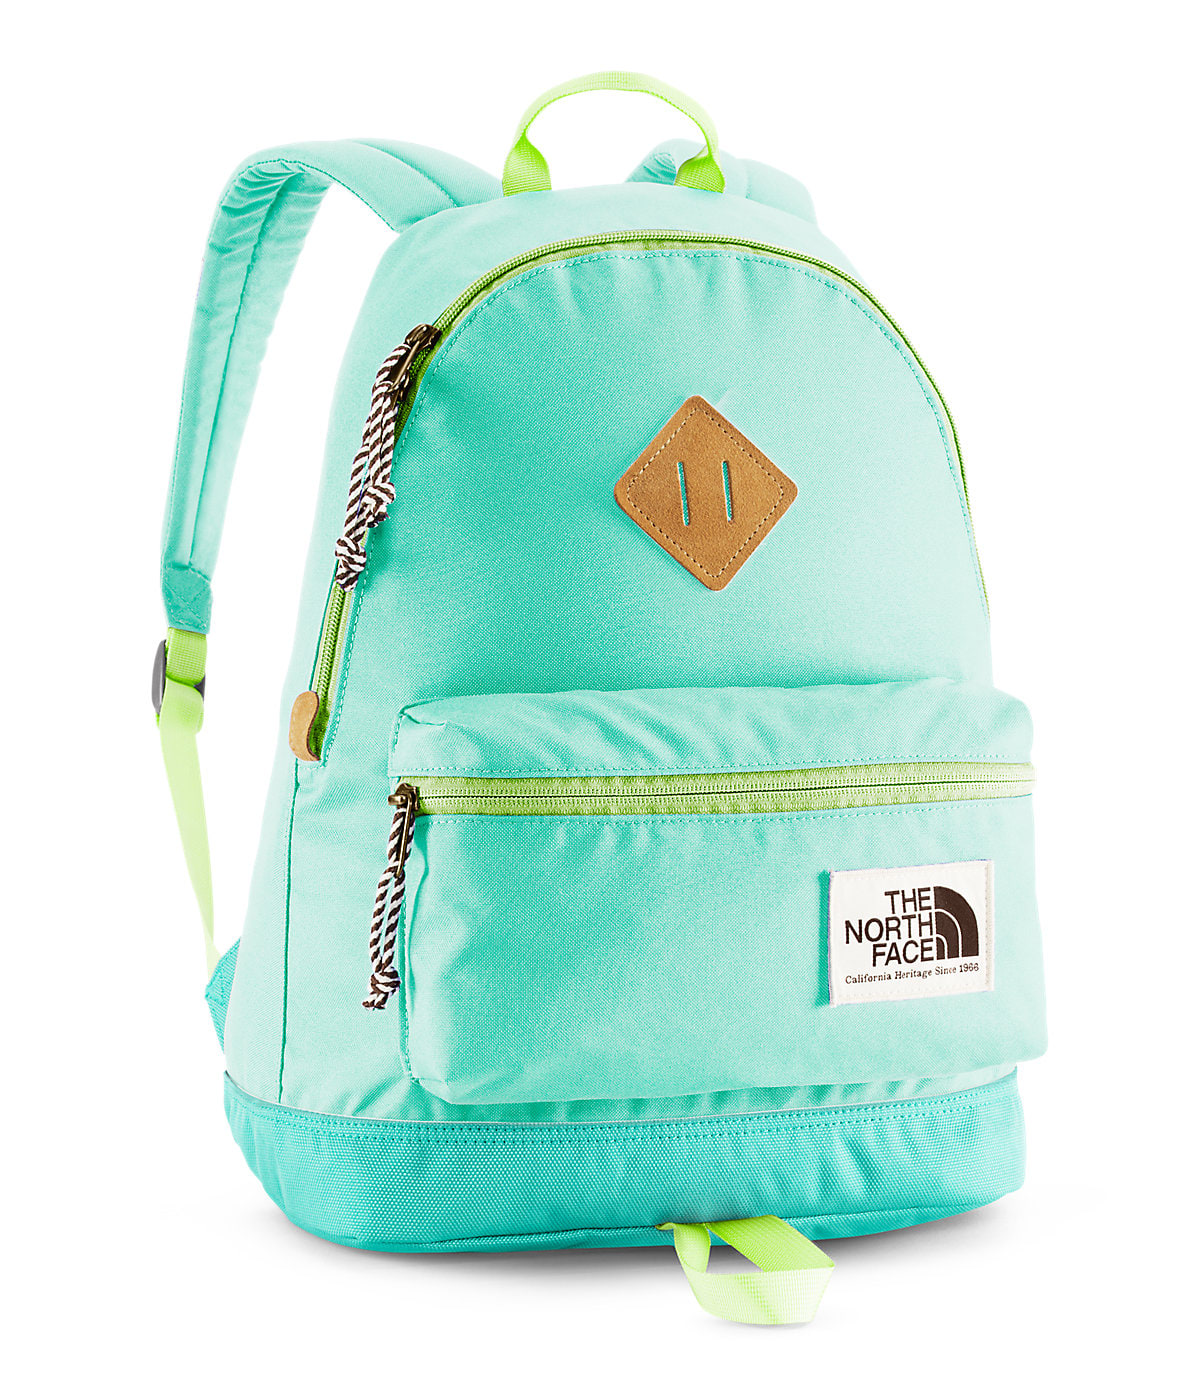 The North Face Mini Berkeley Backpack Kids